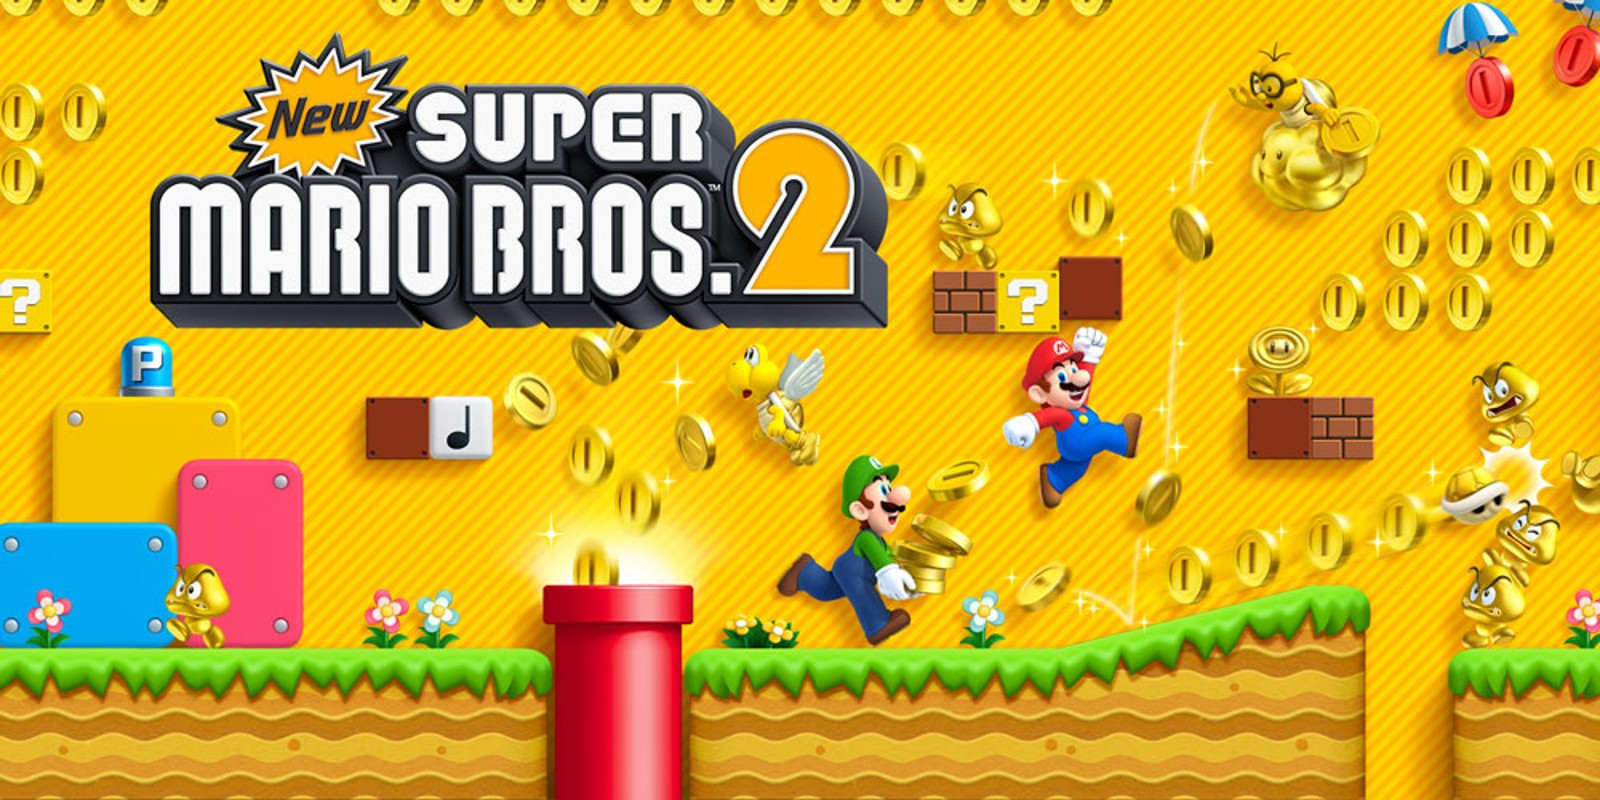 New Super Mario Bros. 2 download for android